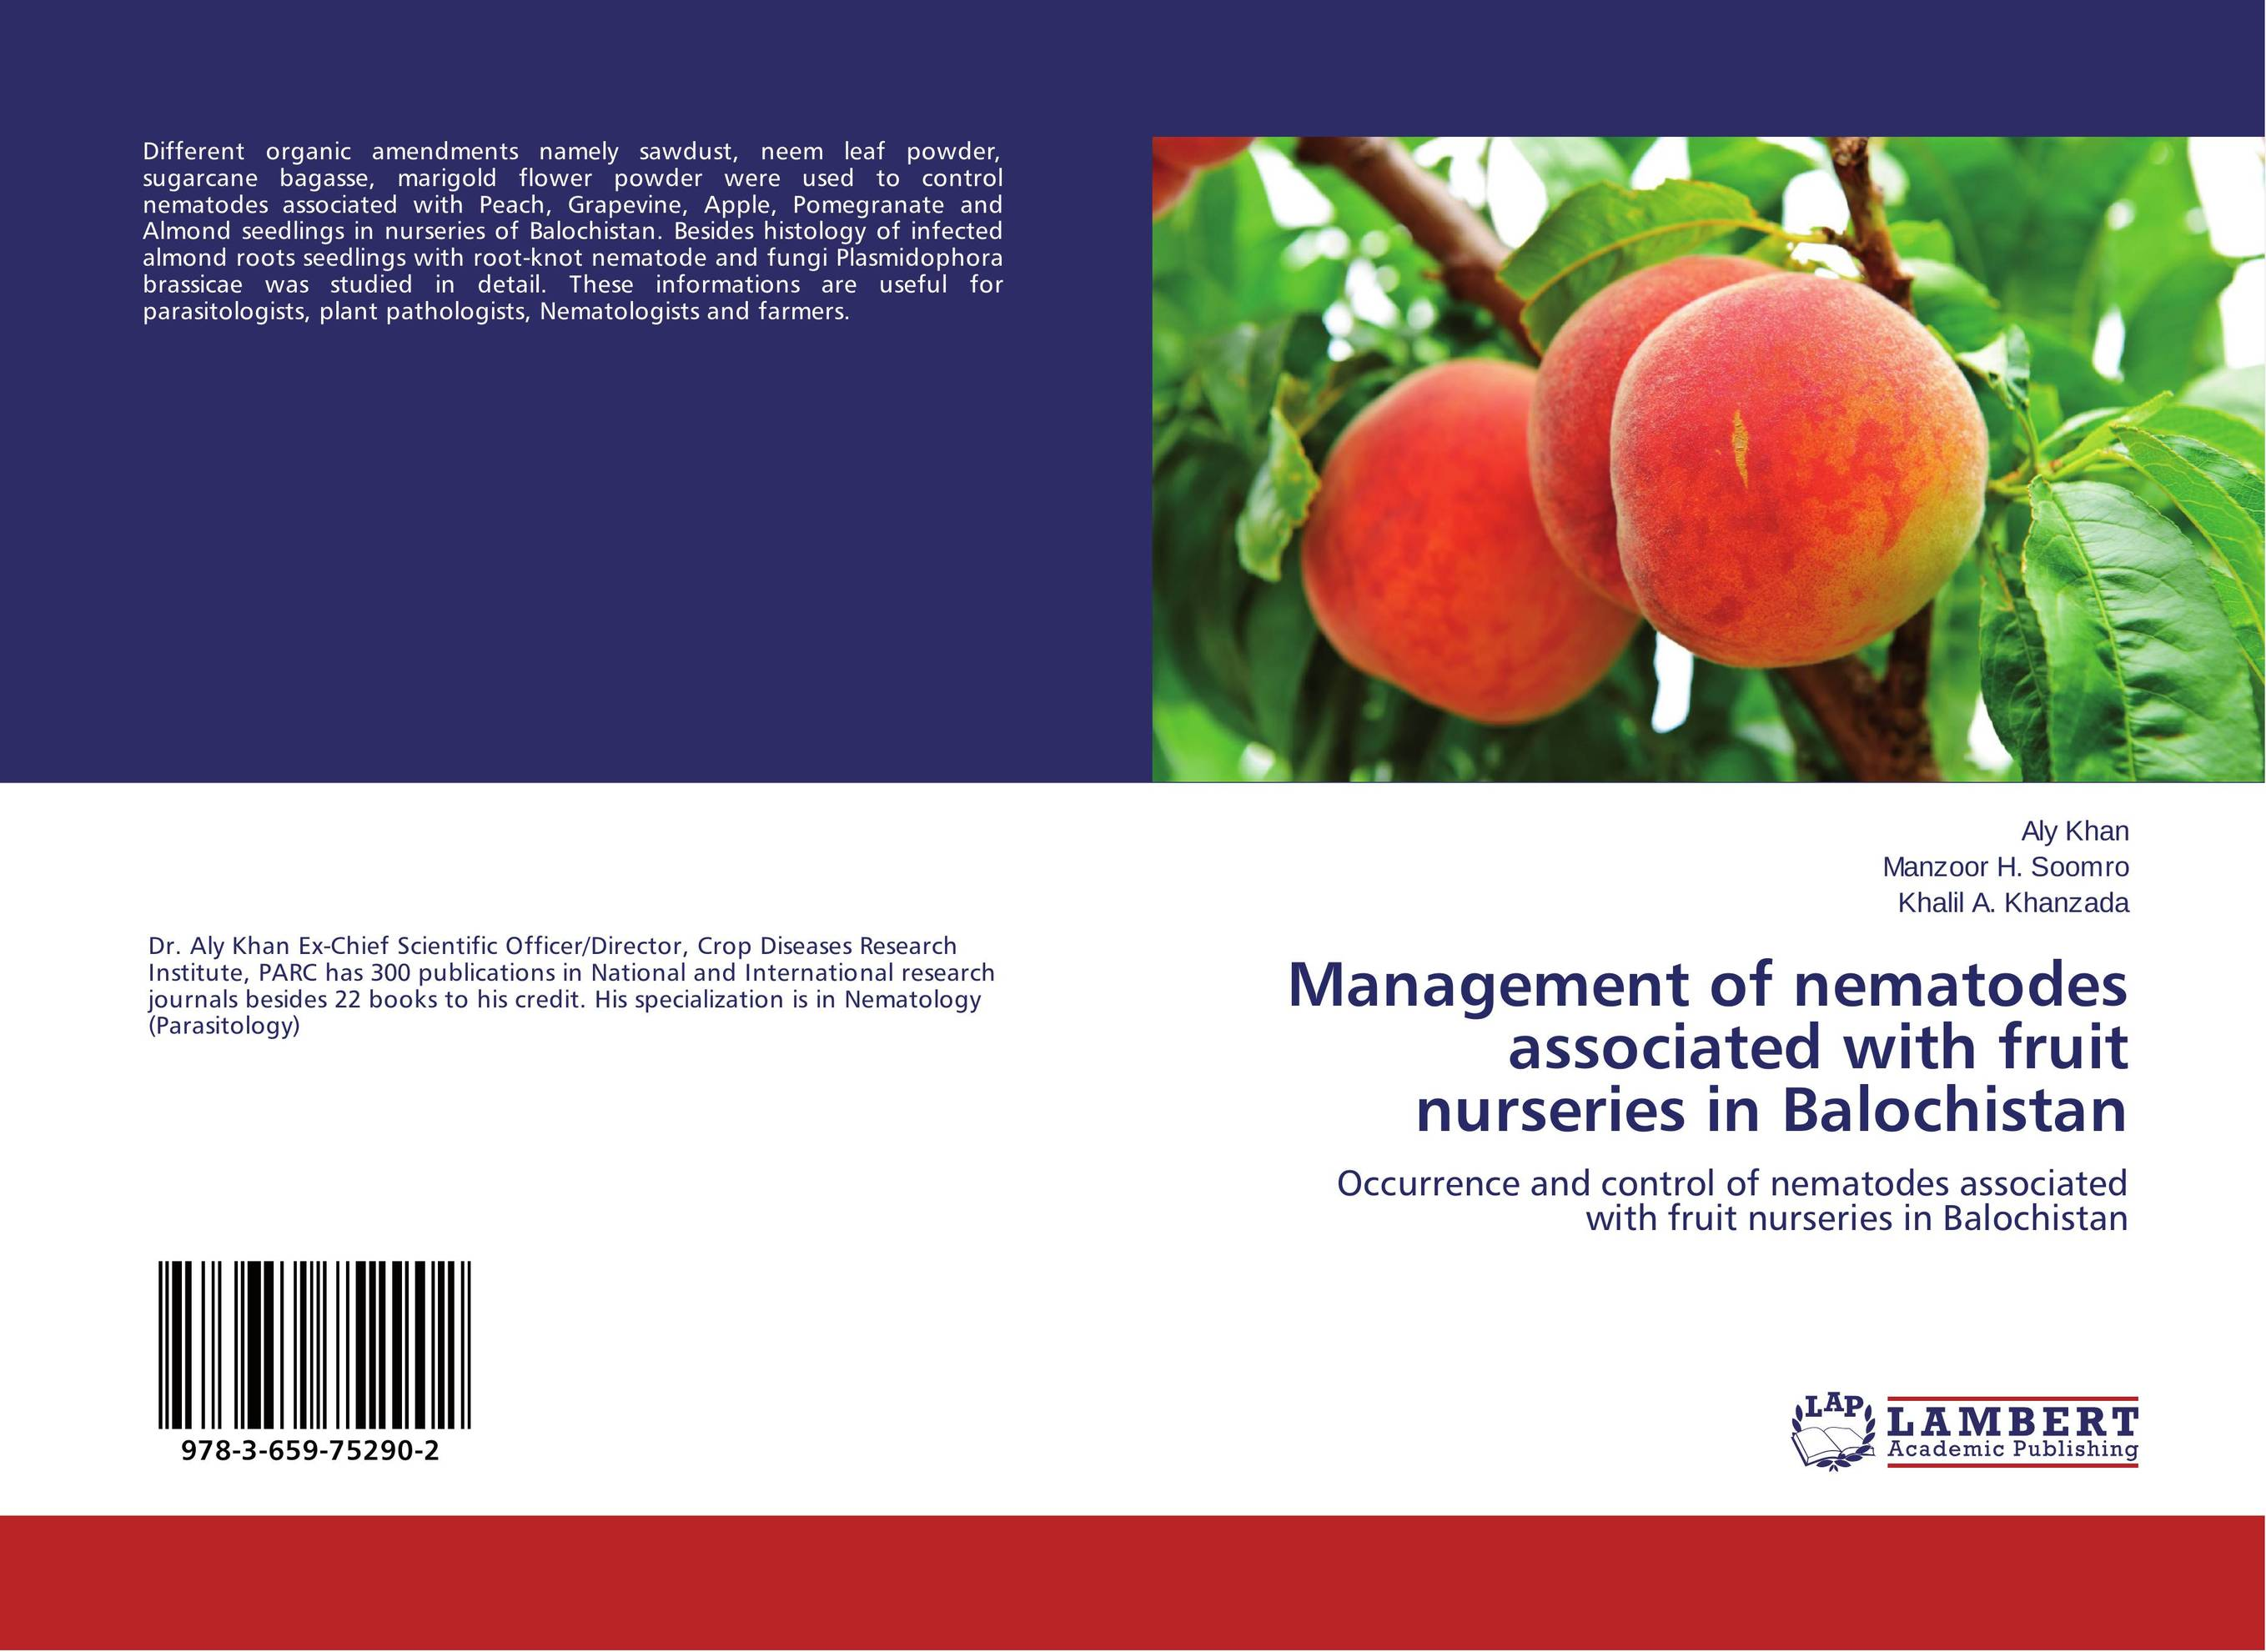 Management of nematodes associated with fruit nurseries in Balochistan